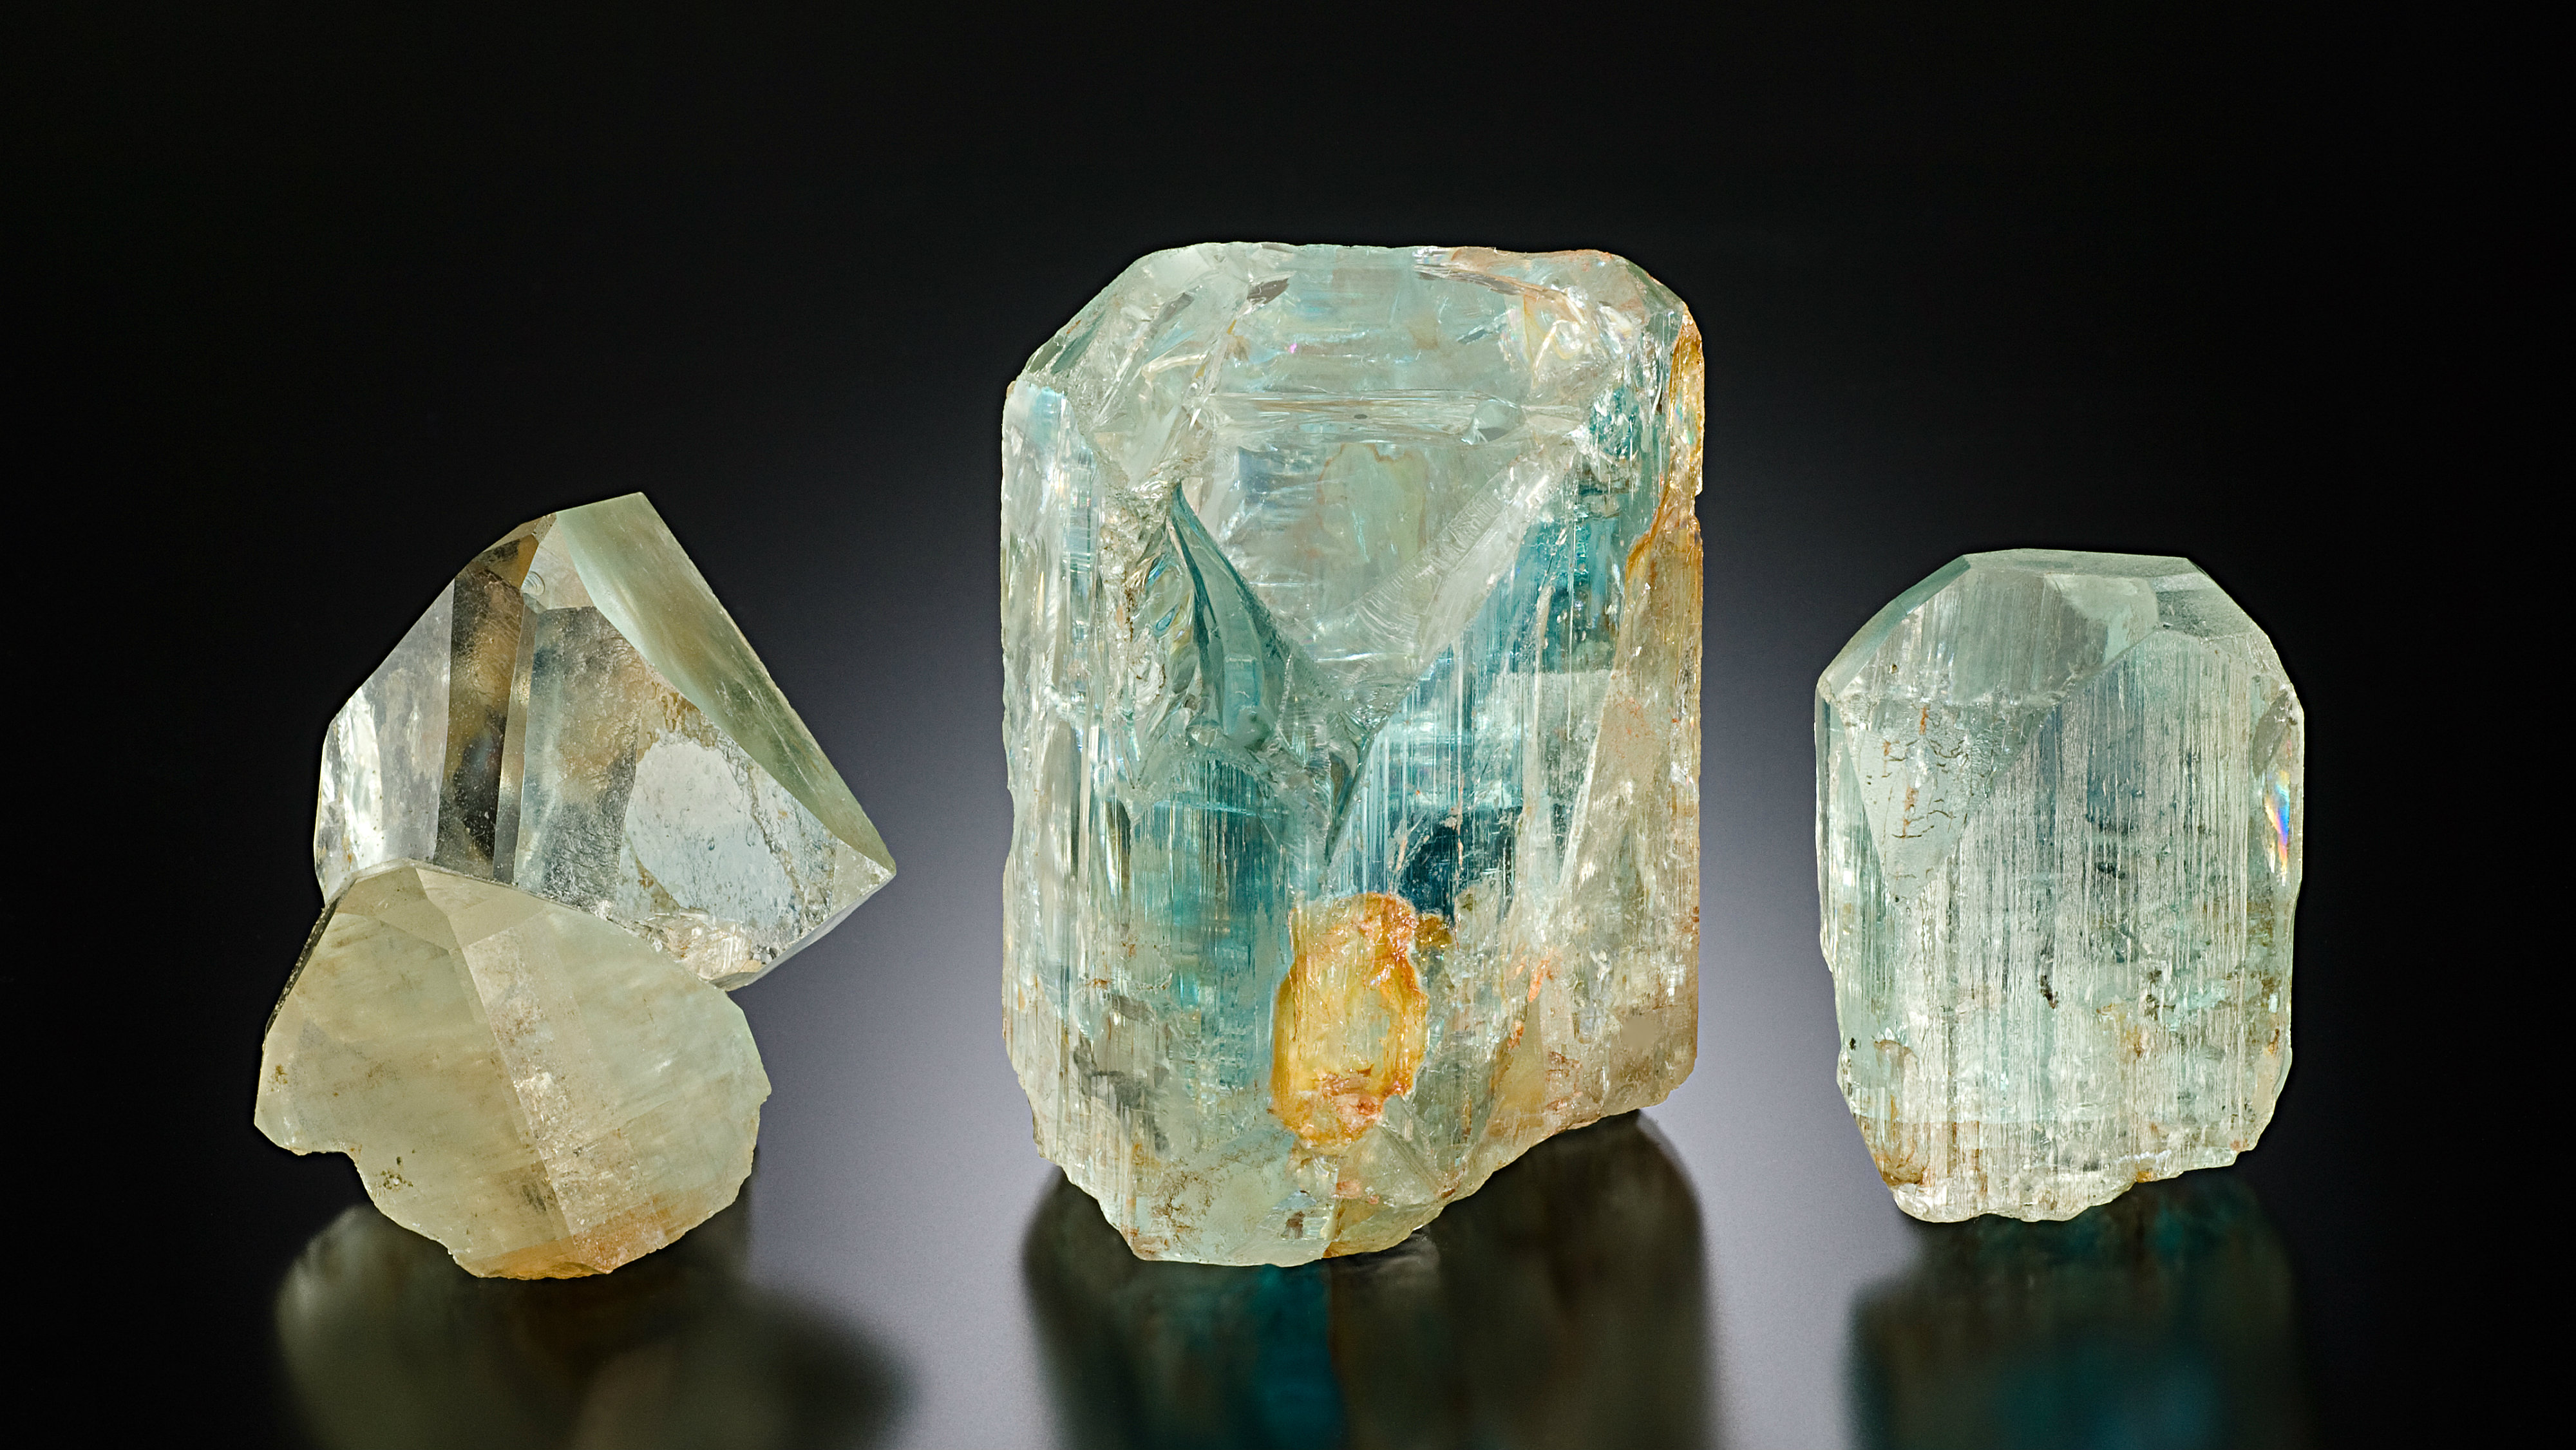 <p> Three Topaz crystals from the Tarryall Mountains in Colo. The largest one weighs 8.5 ounces.</p>